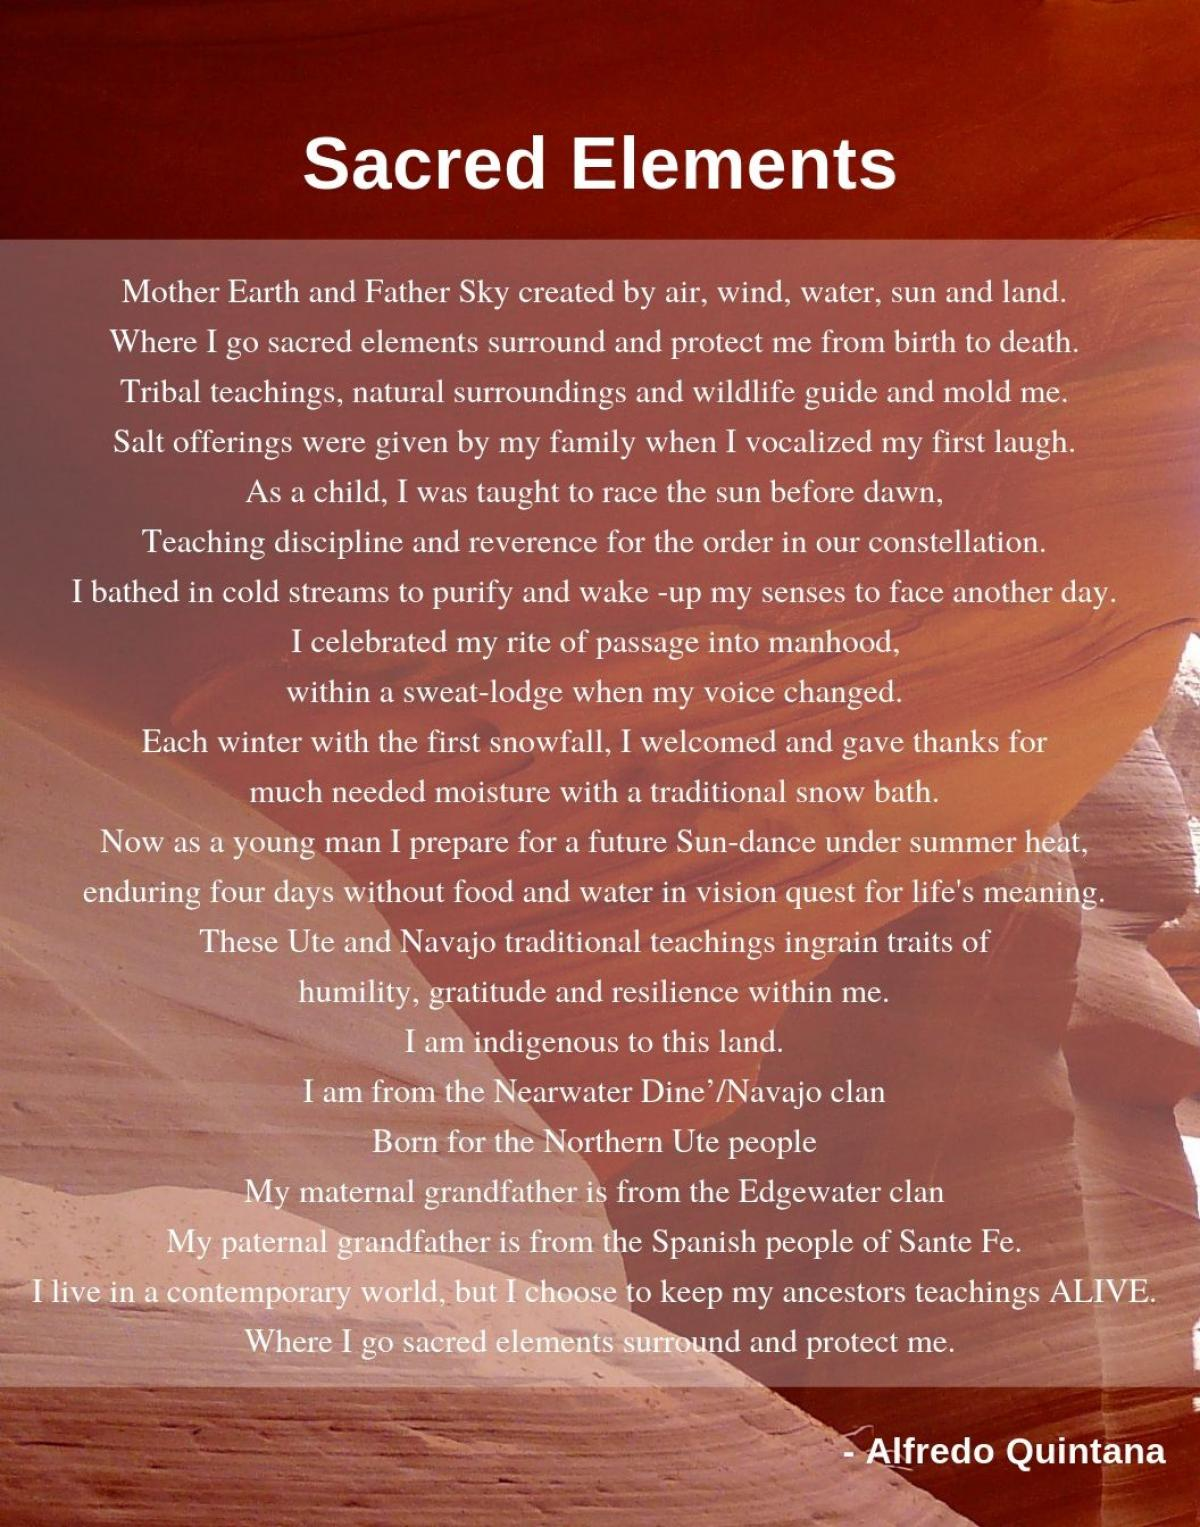 """""""Sacred Elements"""" by Alfredo Quintana; River of Words 2018-19 Poetry Finalist."""